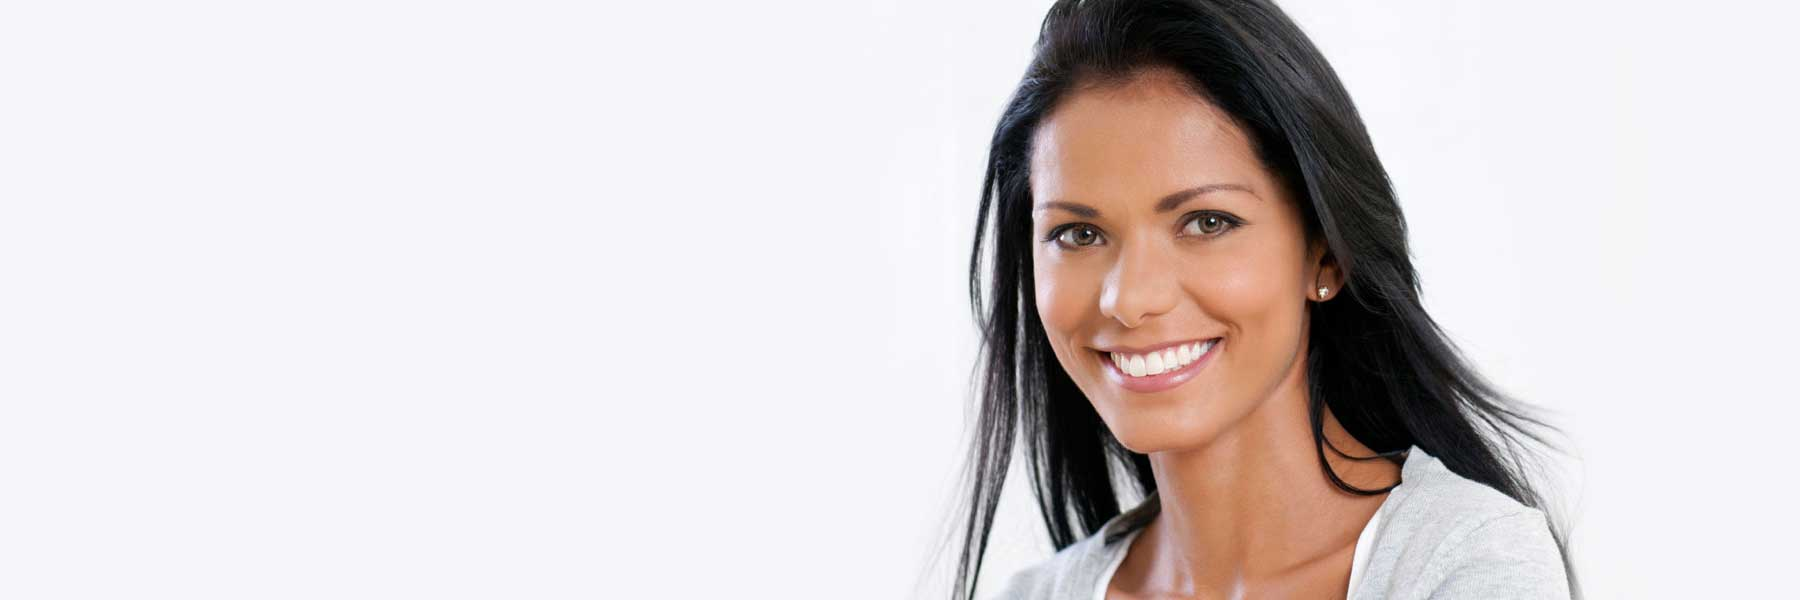 Cosmetic Dentistry from Your Dentist in Carlsbad | Dentist